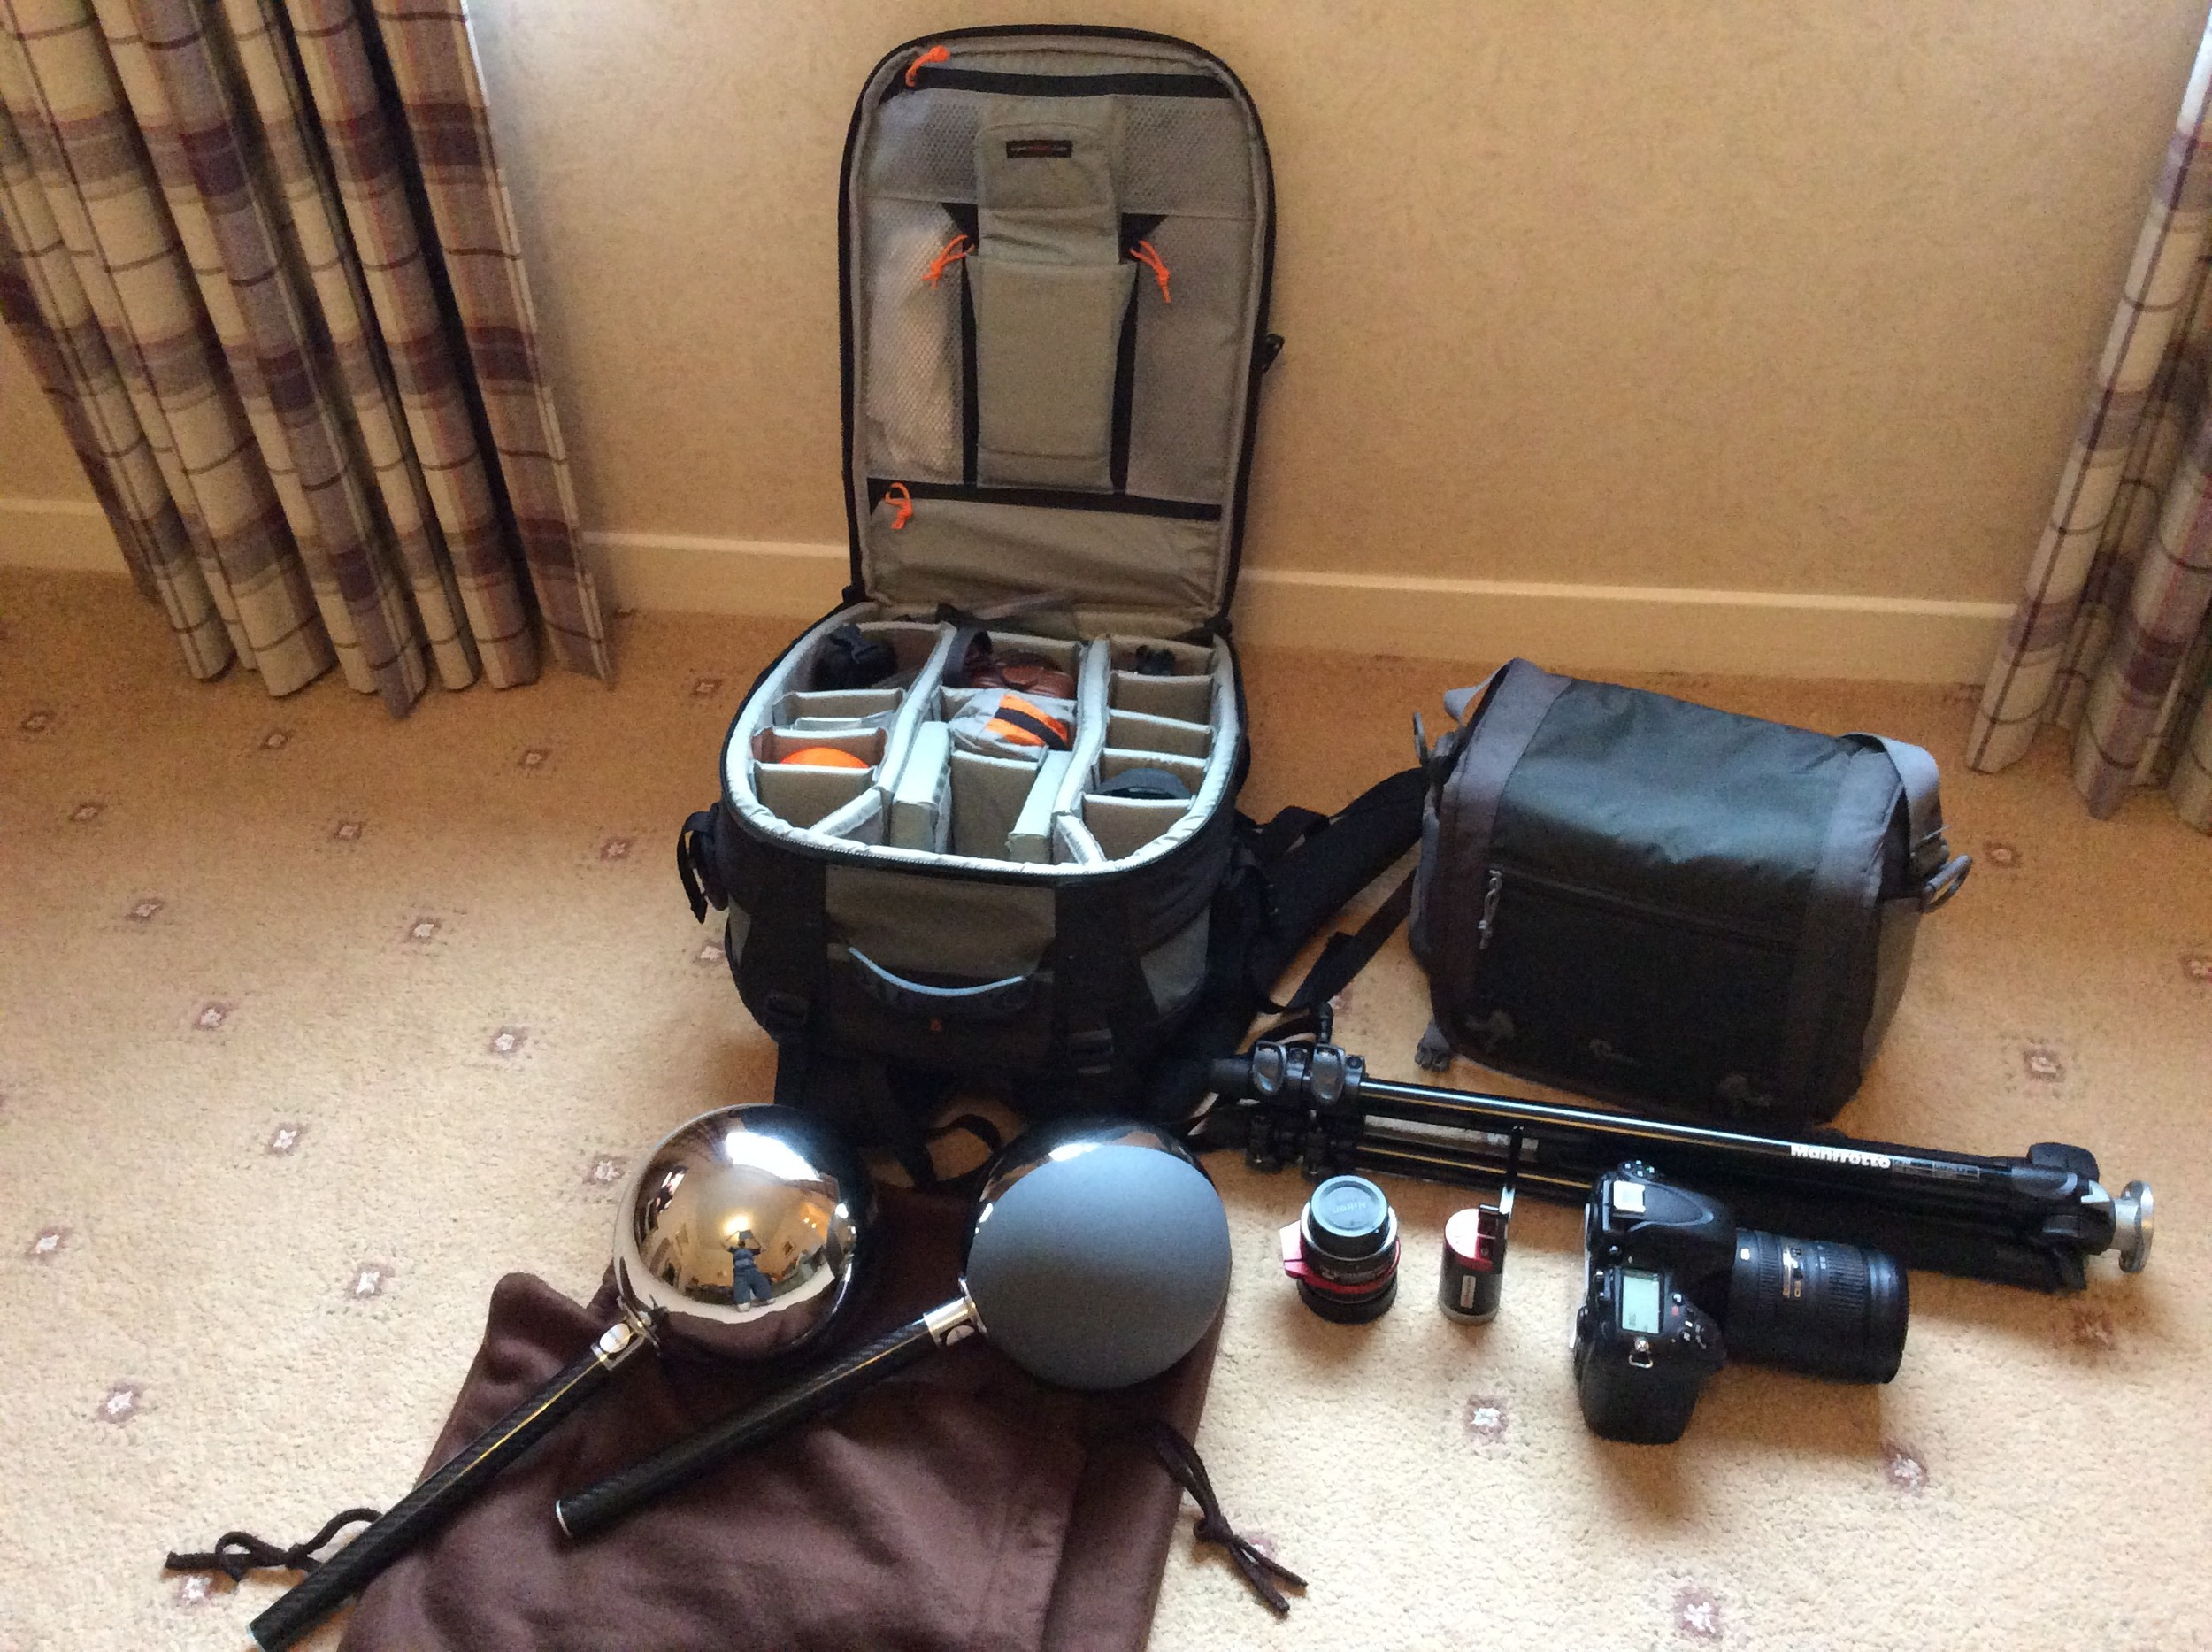 Most important assets are: Camera body, fish-eye lens, multi purpose lens, tripod, nodal head, macbeth chart and lighting checkers.